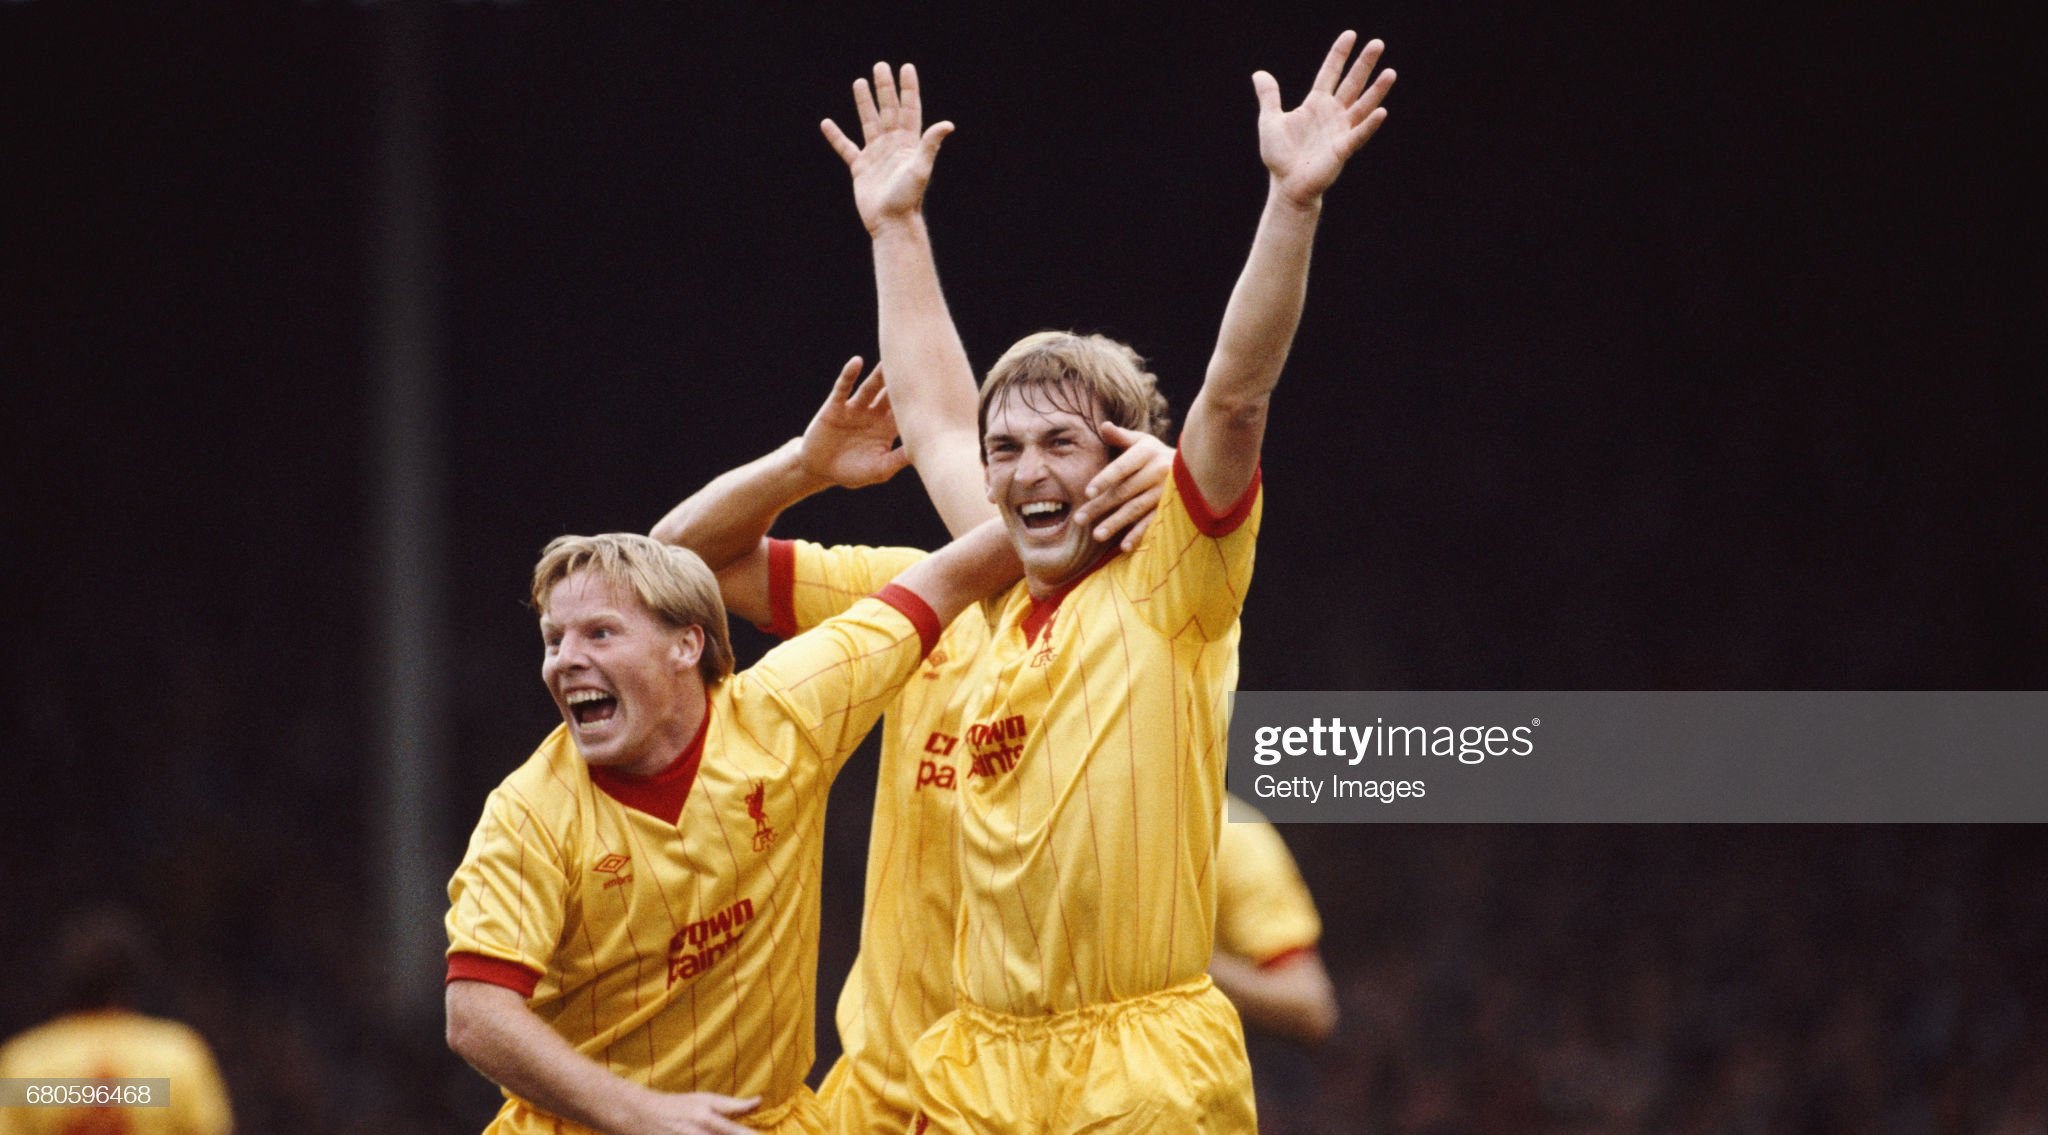 https://media.gettyimages.com/photos/liverpool-player-sammy-lee-congratulates-kenny-dalglish-after-had-picture-id680596468?s=2048x2048